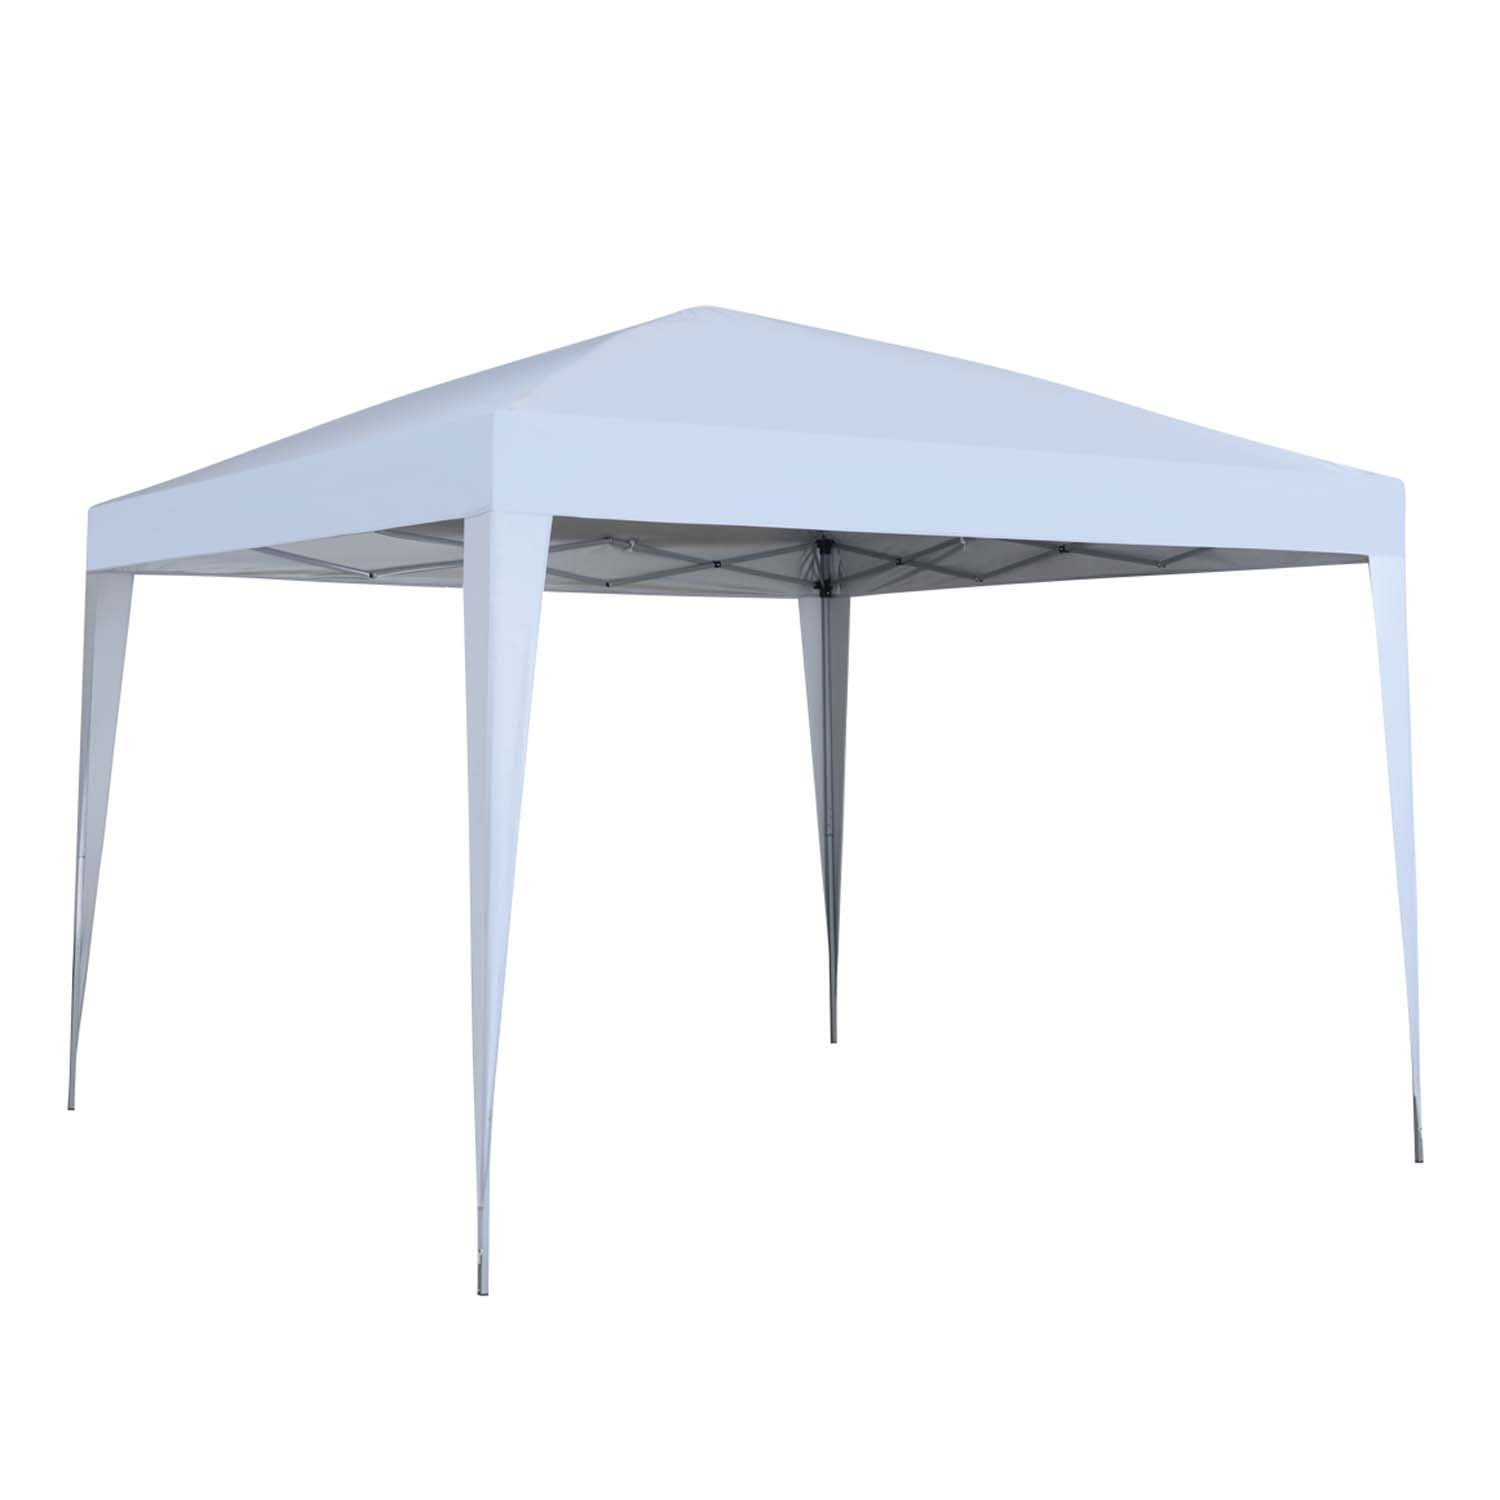 10 x 10 ft Pop-Up Canopy Tent Gazebo for Beach Tailgating Party White